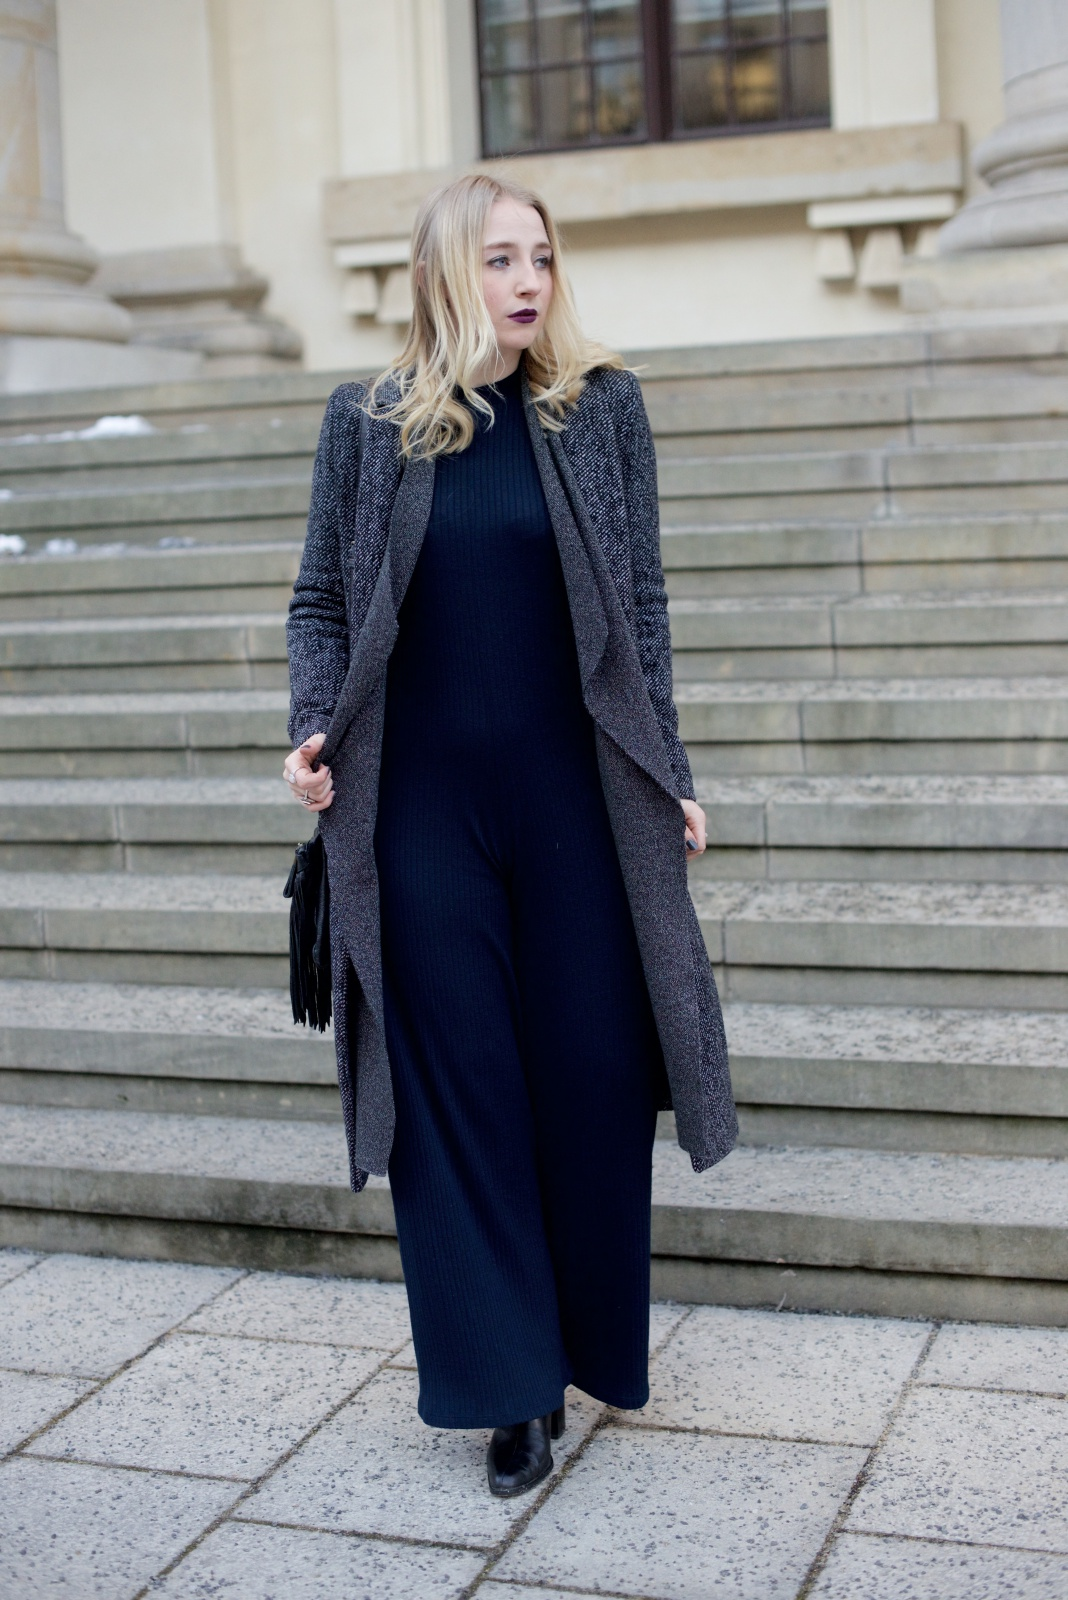 fashion_week_2016_winter_outfit_fashionblogger_berlin_cologne_4696